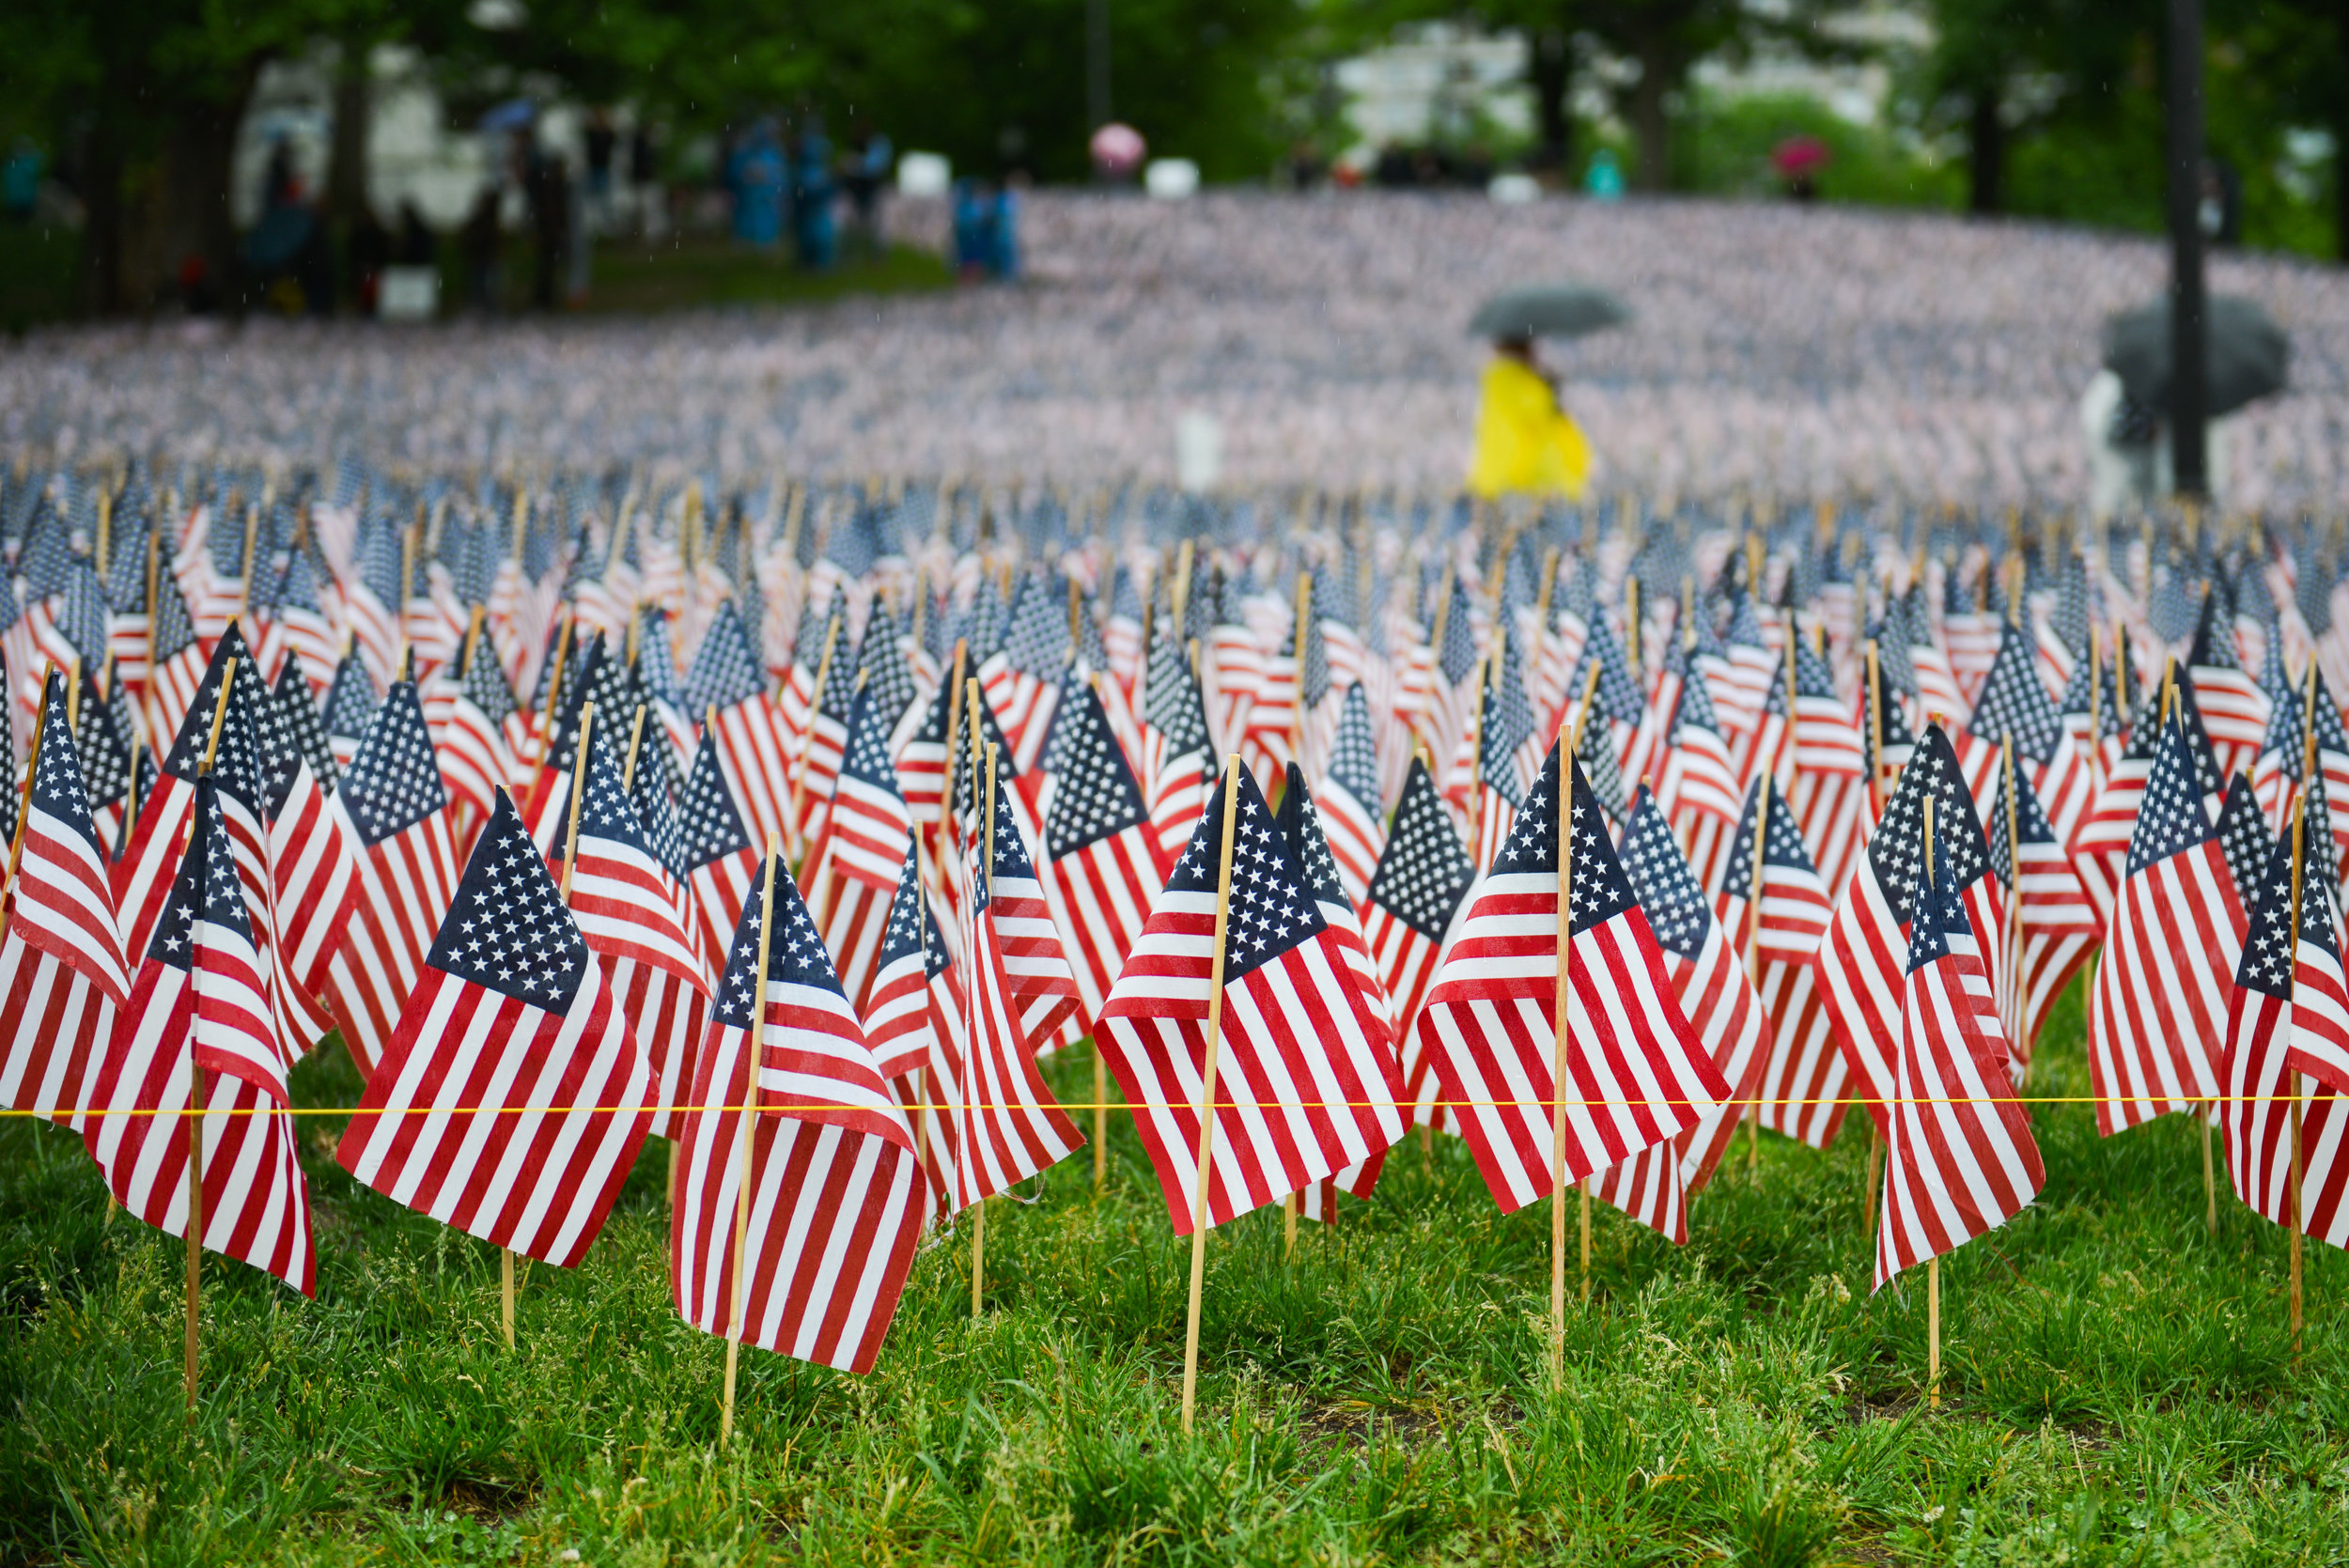 Historically, Memorial Day was once known as Decoration Day. - It has always been a time to honor and remember the fallen who served our country, whether 100 or more years ago or today, or at any time in the history of the United States.